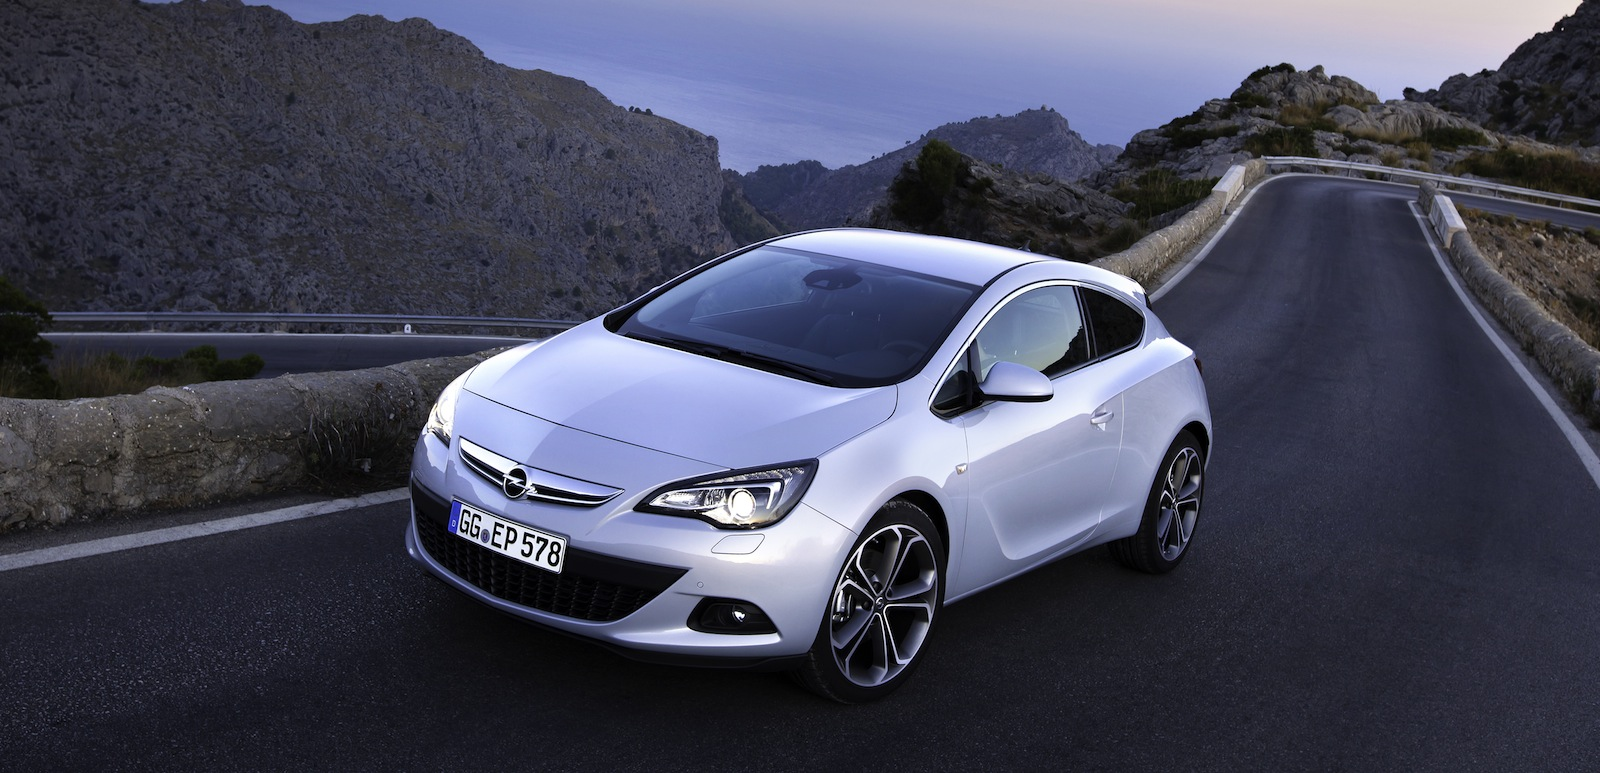 opel astra gtc new 1 6 litre turbo petrol here next month. Black Bedroom Furniture Sets. Home Design Ideas